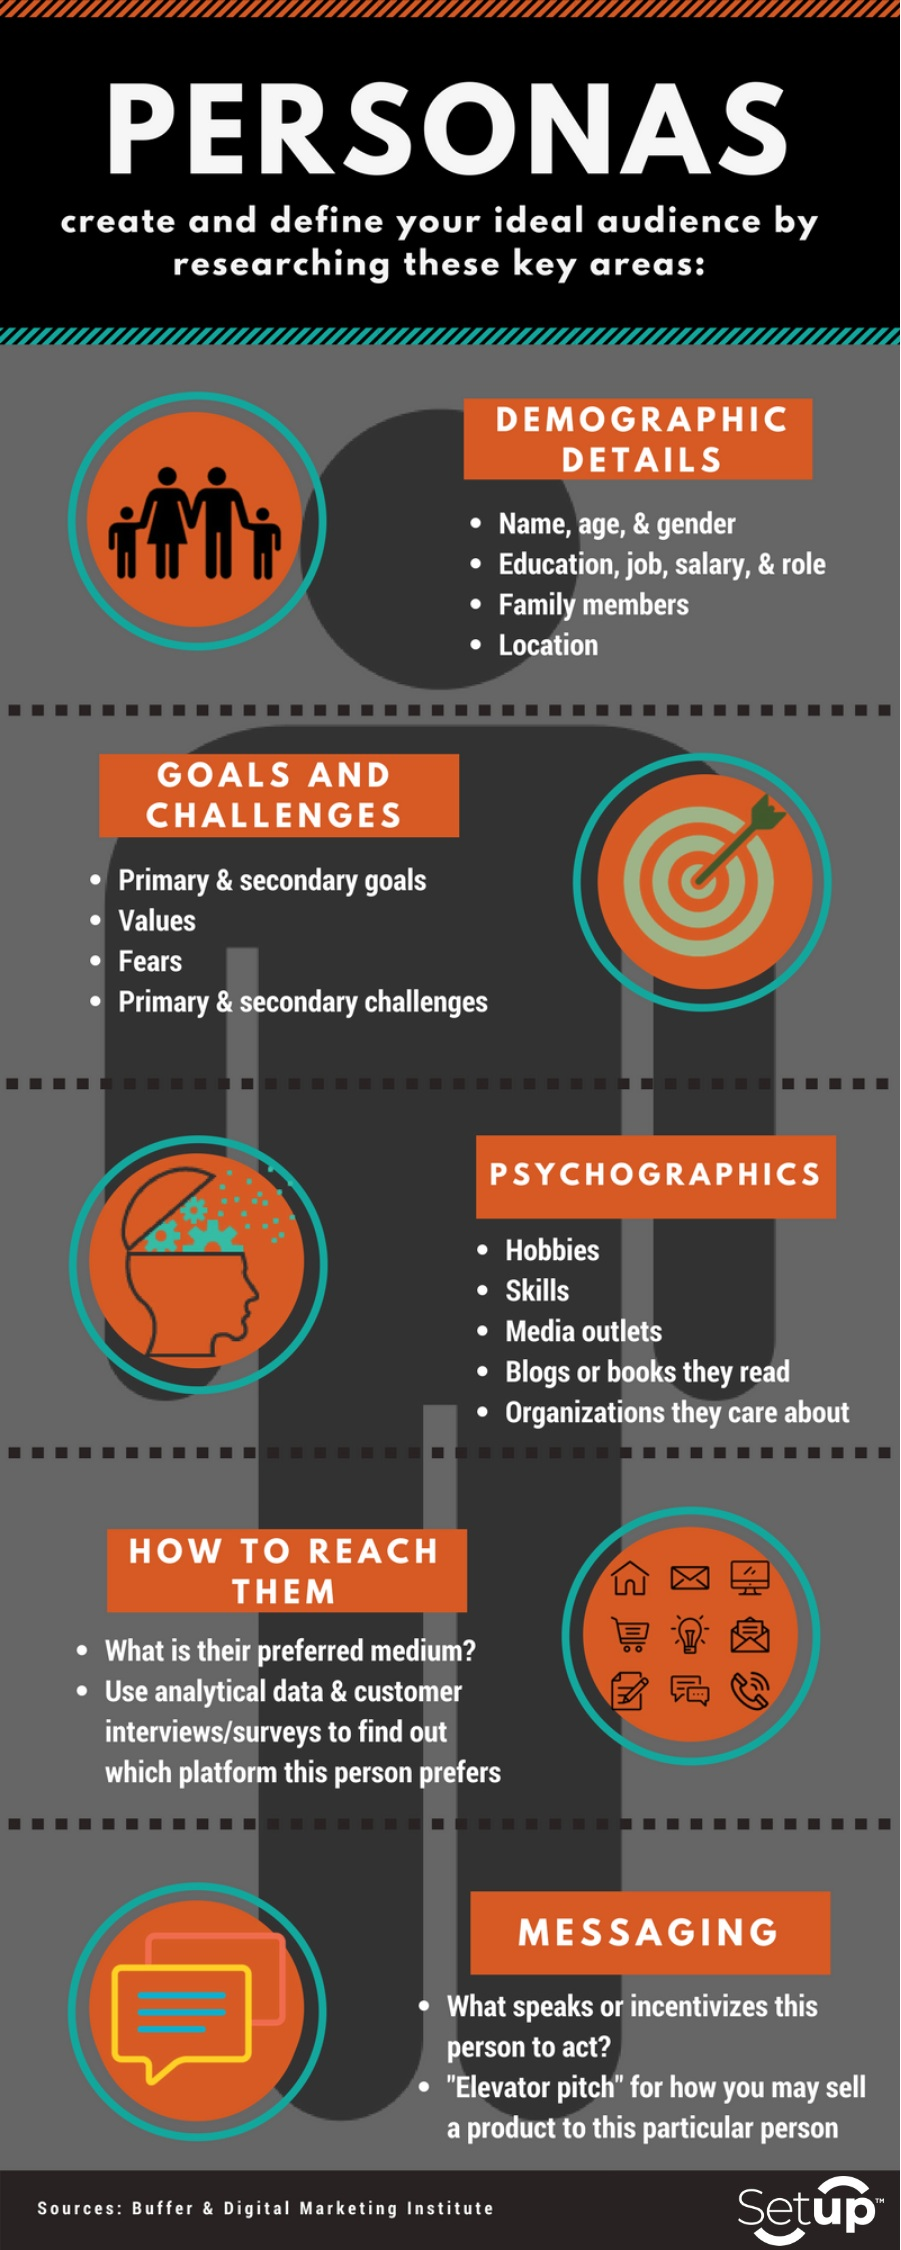 Creating personas requires psychographic and demographic research.